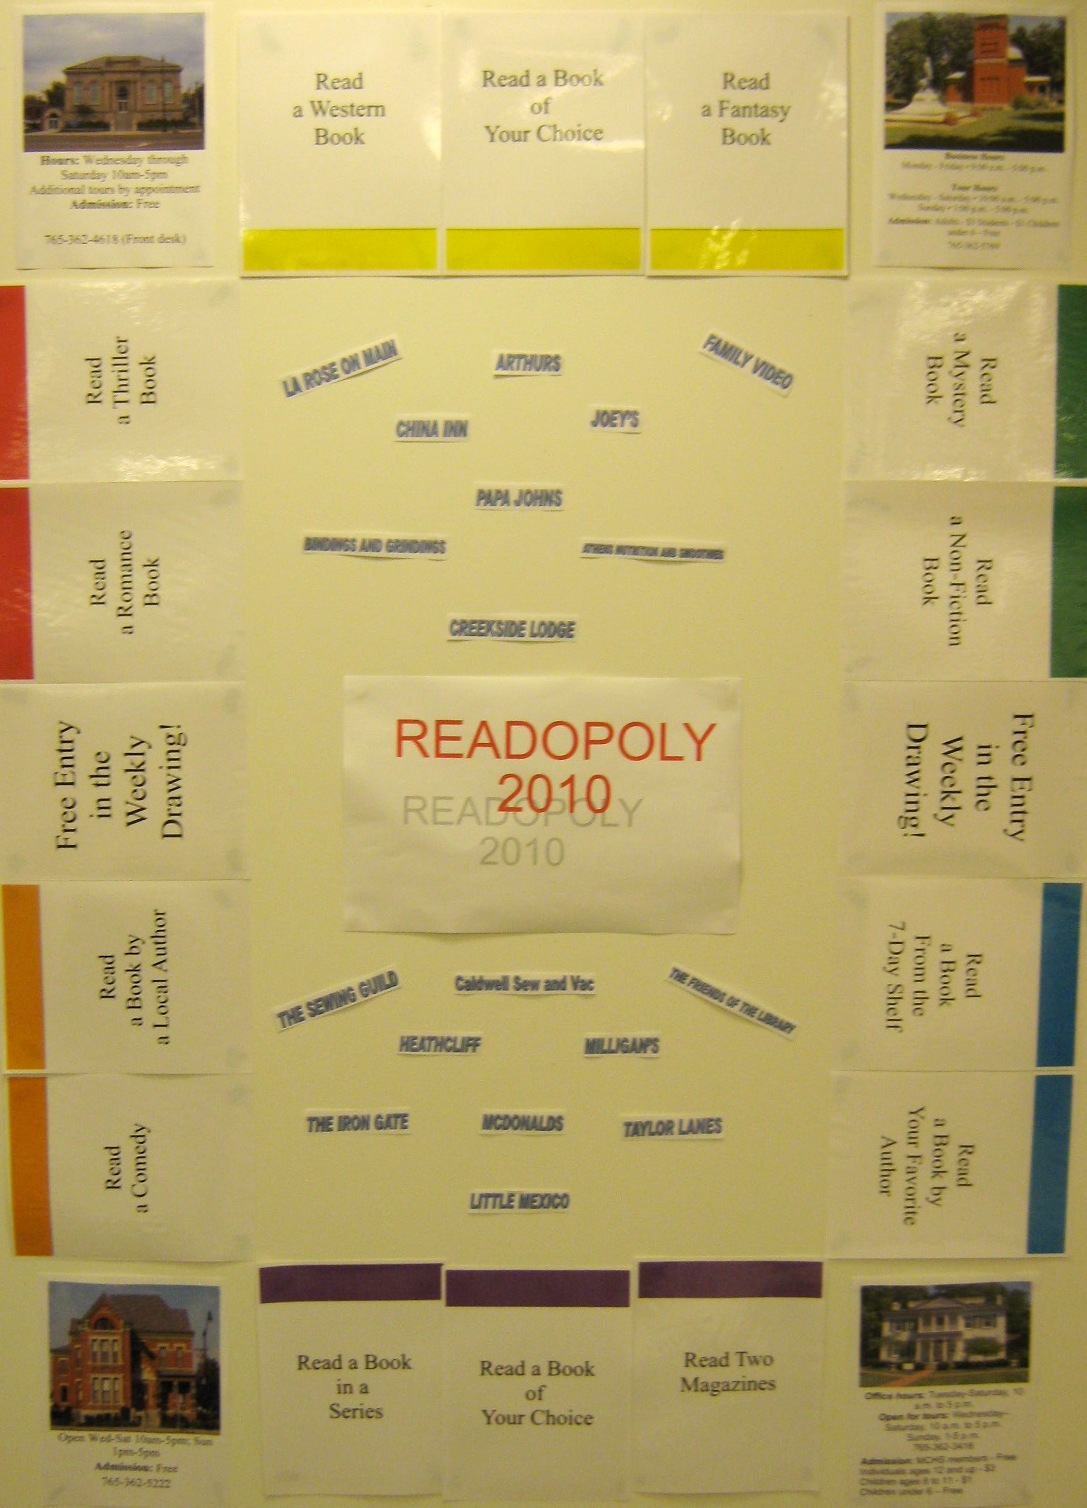 Readopoly: The 2010 Adult